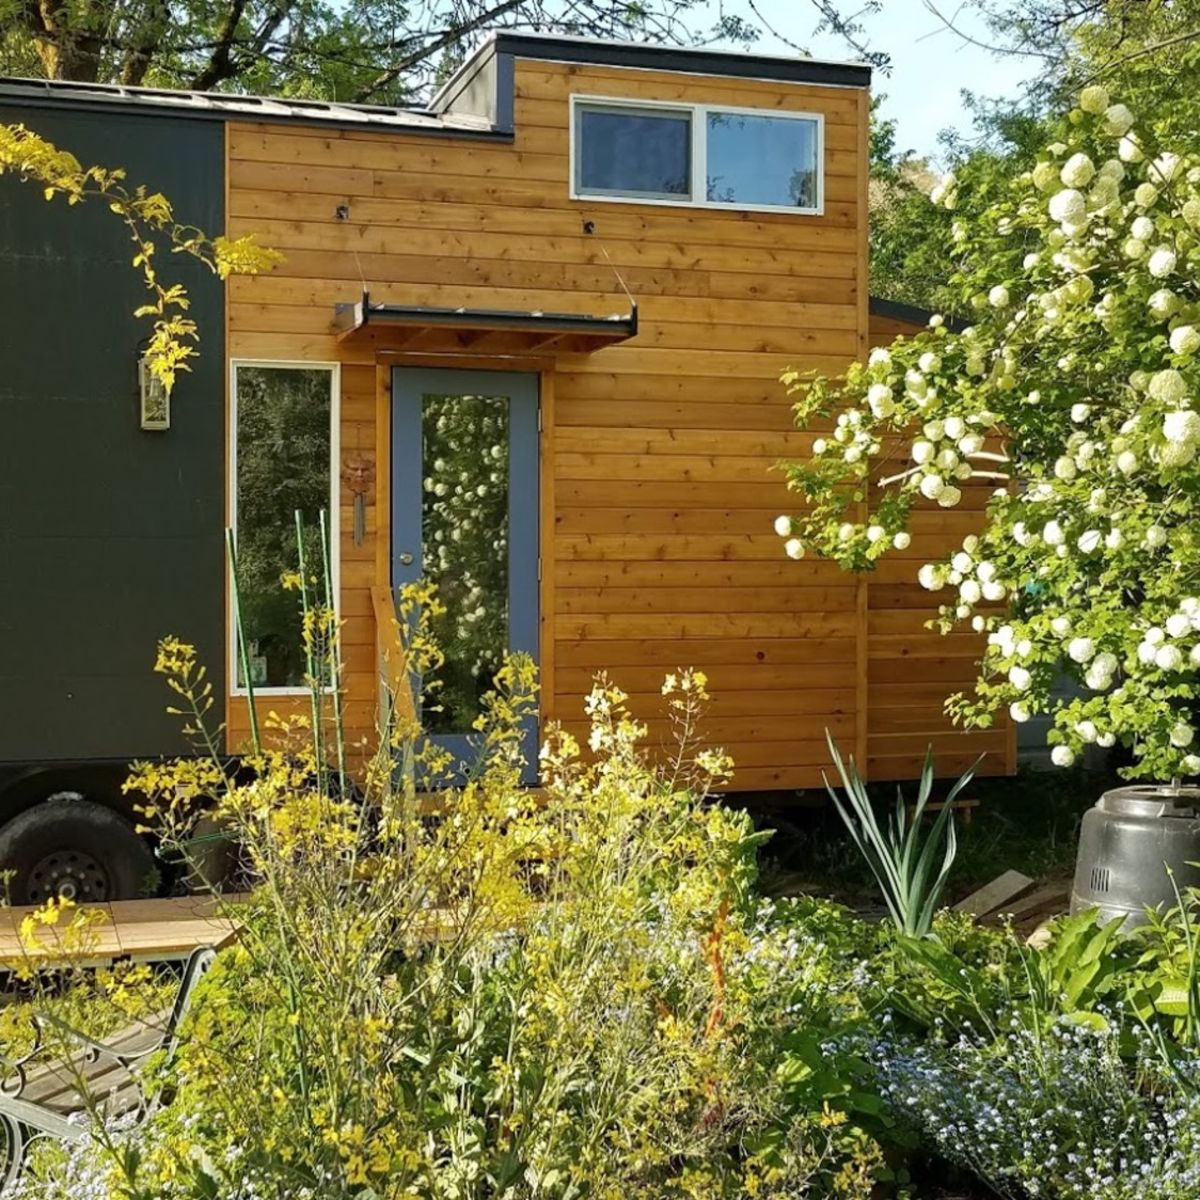 2 Bedroom 31 Luxury Tiny House On Wheels For Sale Tiny House For Sale In Portland Oregon Tiny House Listings